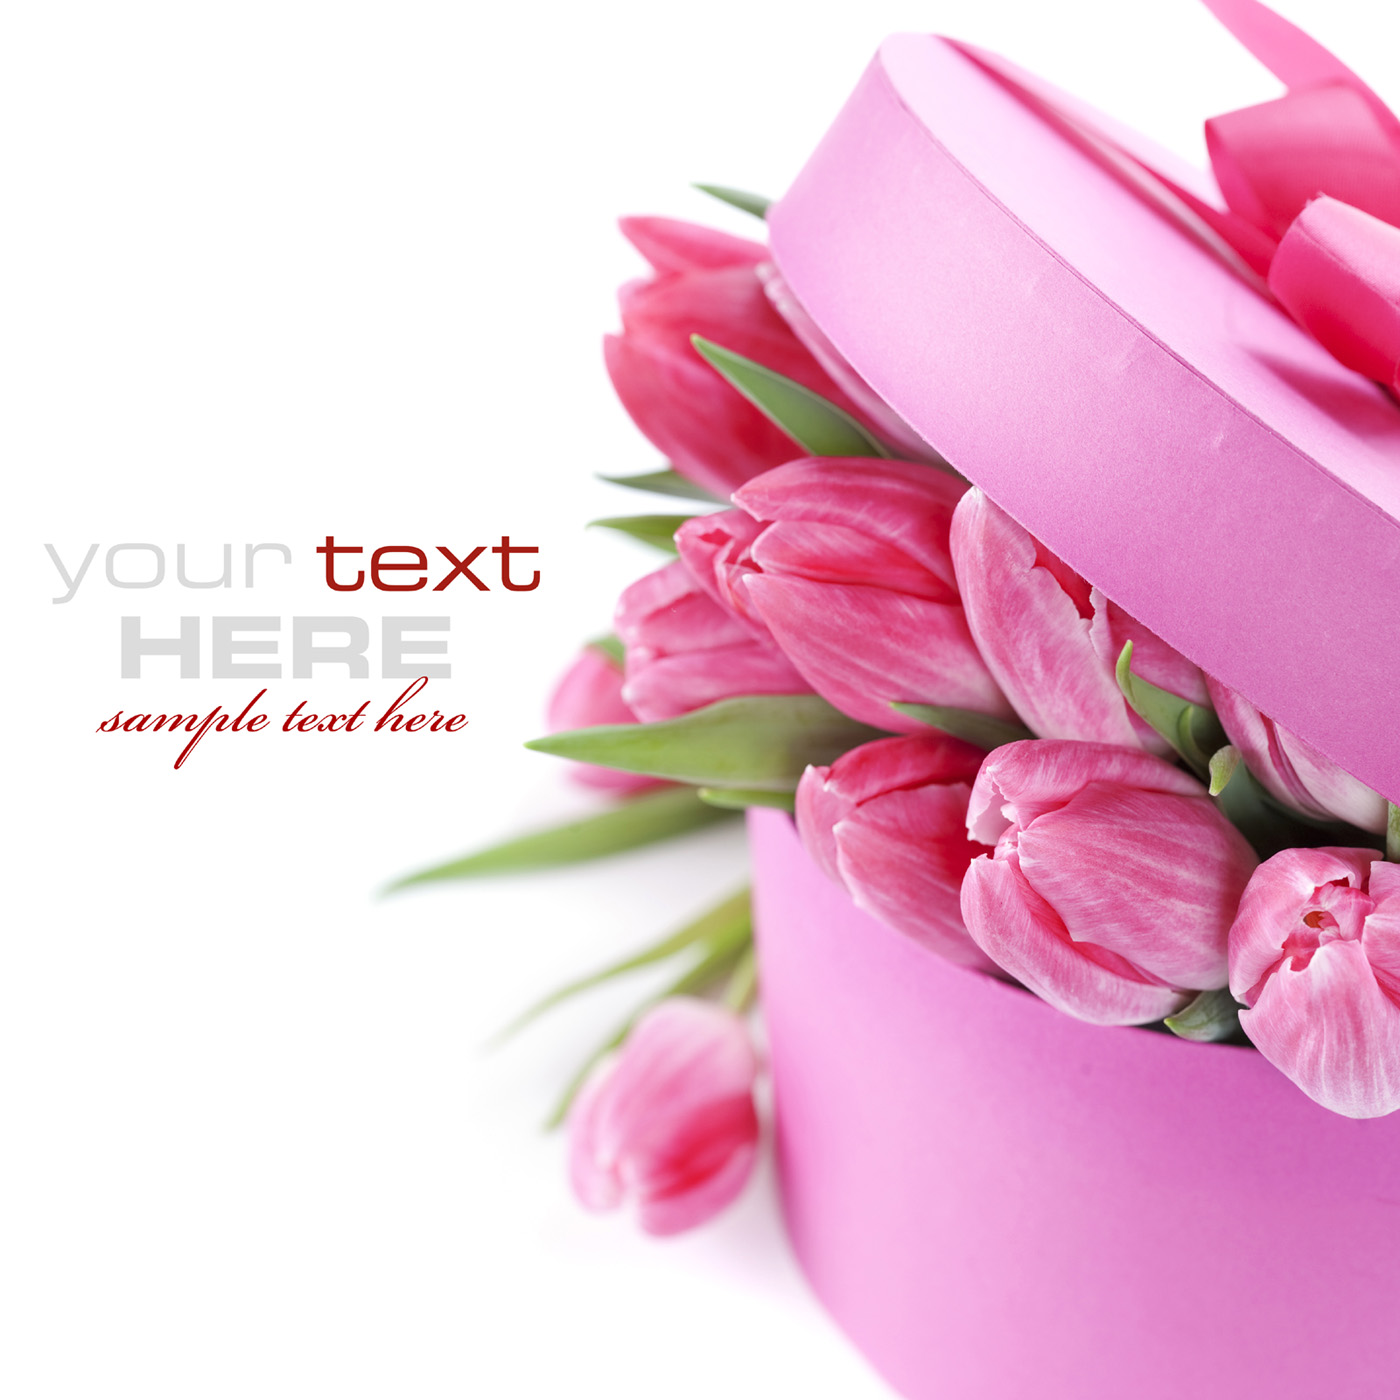 Free pictures of tulips flowers clip free Red and yellow tulips 52302 - Tulip - Flowers clip free